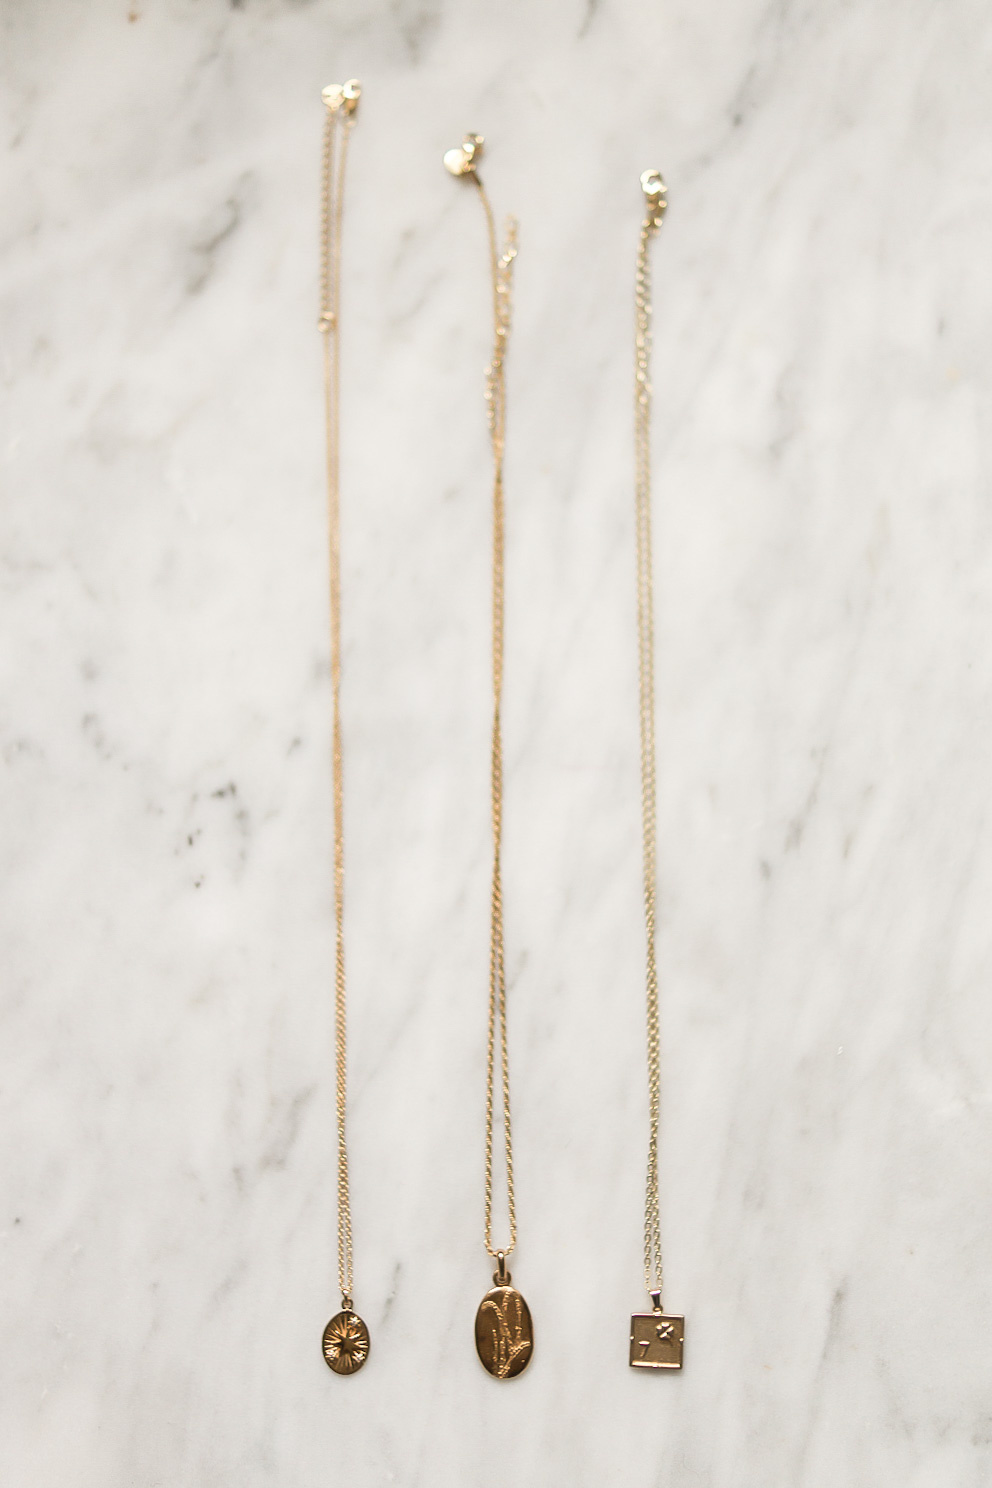 dainty-gold-necklaces-mejuri-daisy-london-edge-of-ember